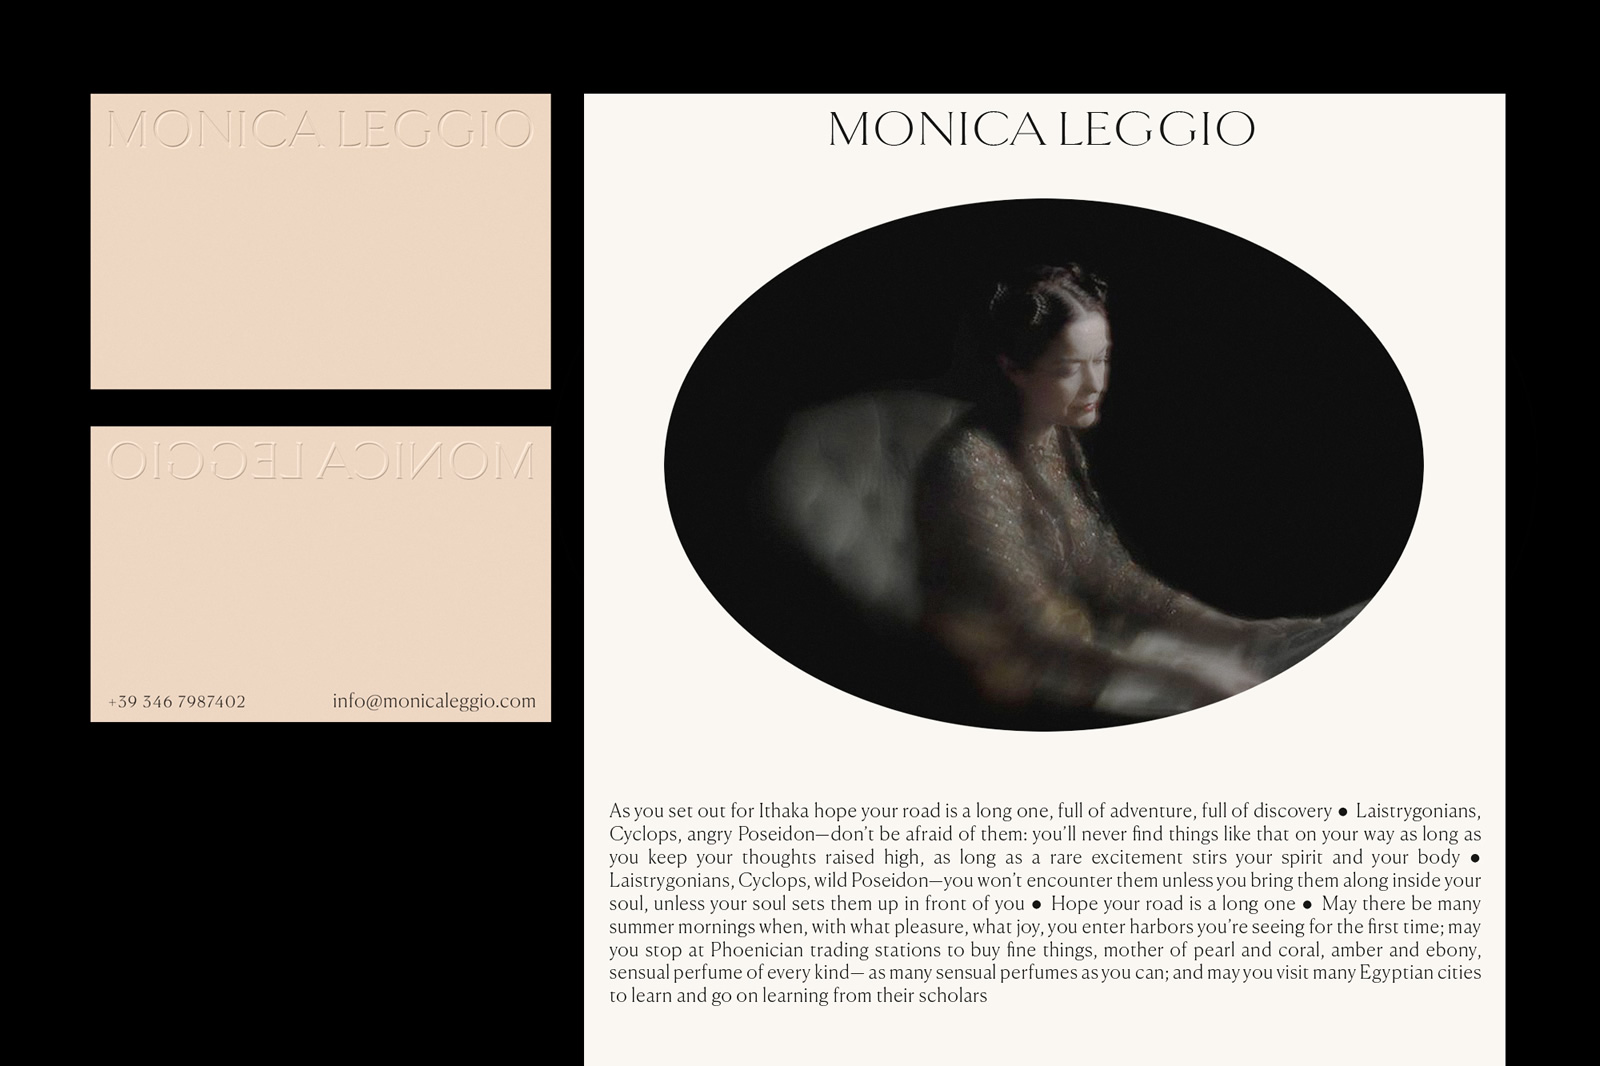 visual identity photographer monica leggio